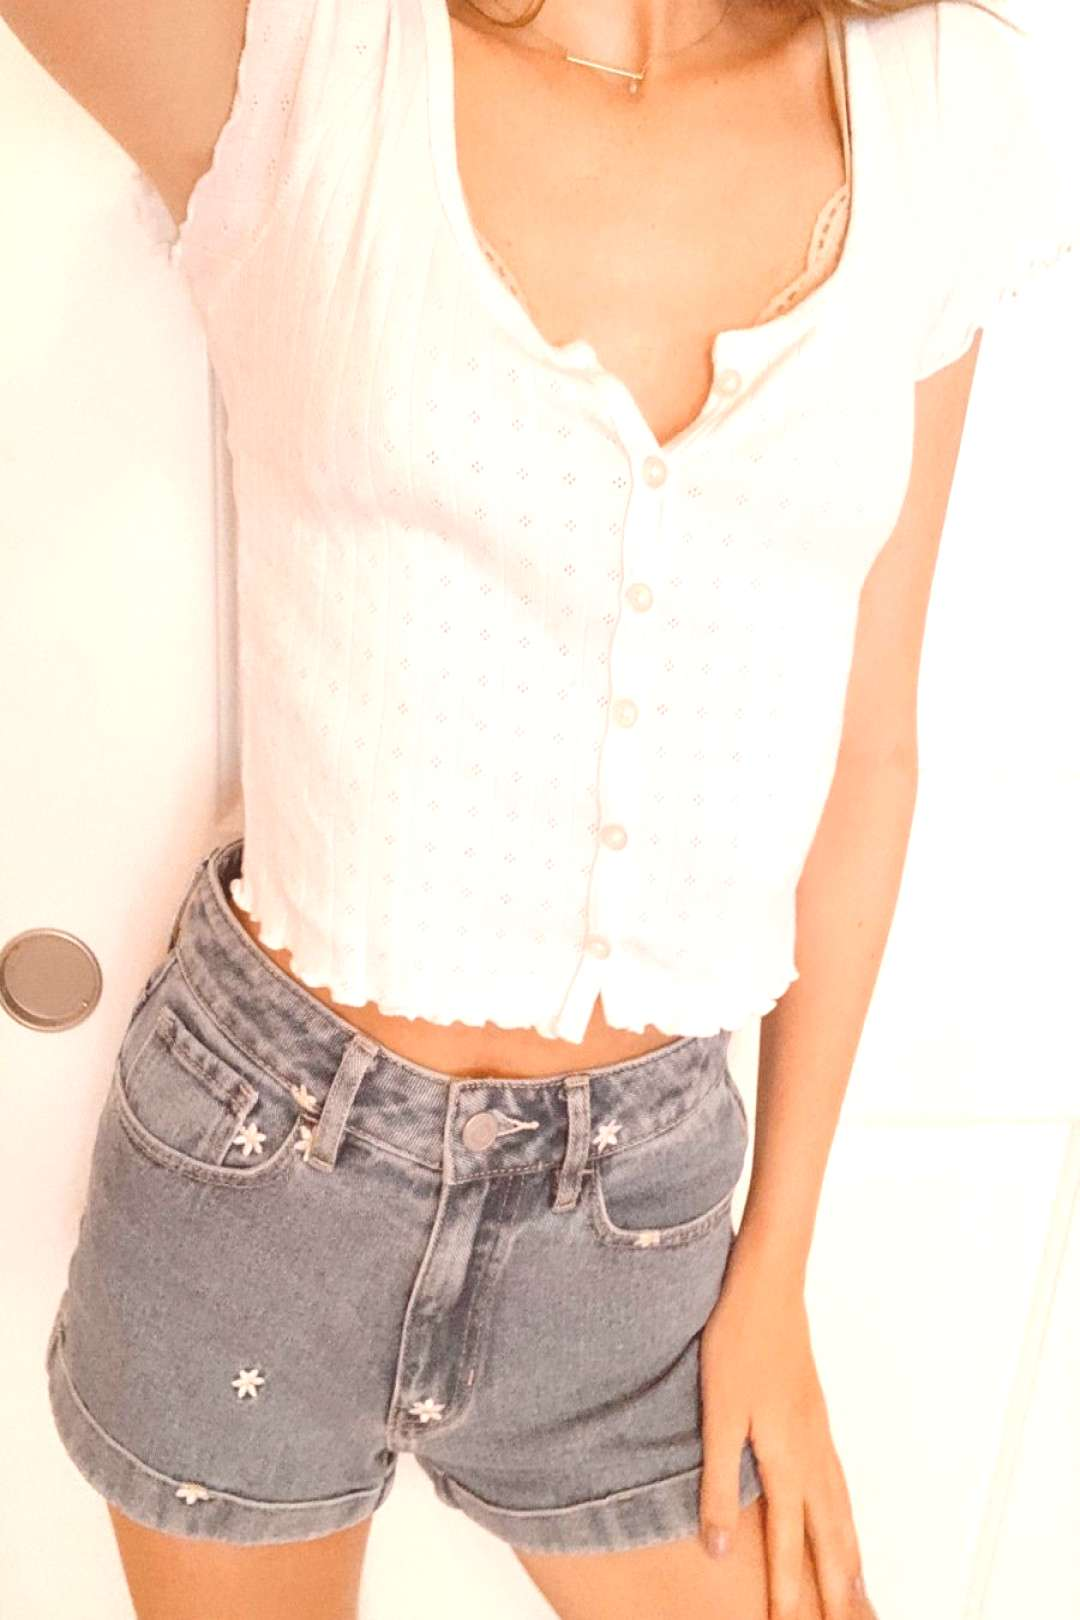 Summer Outfit White top and daisy shorts ?